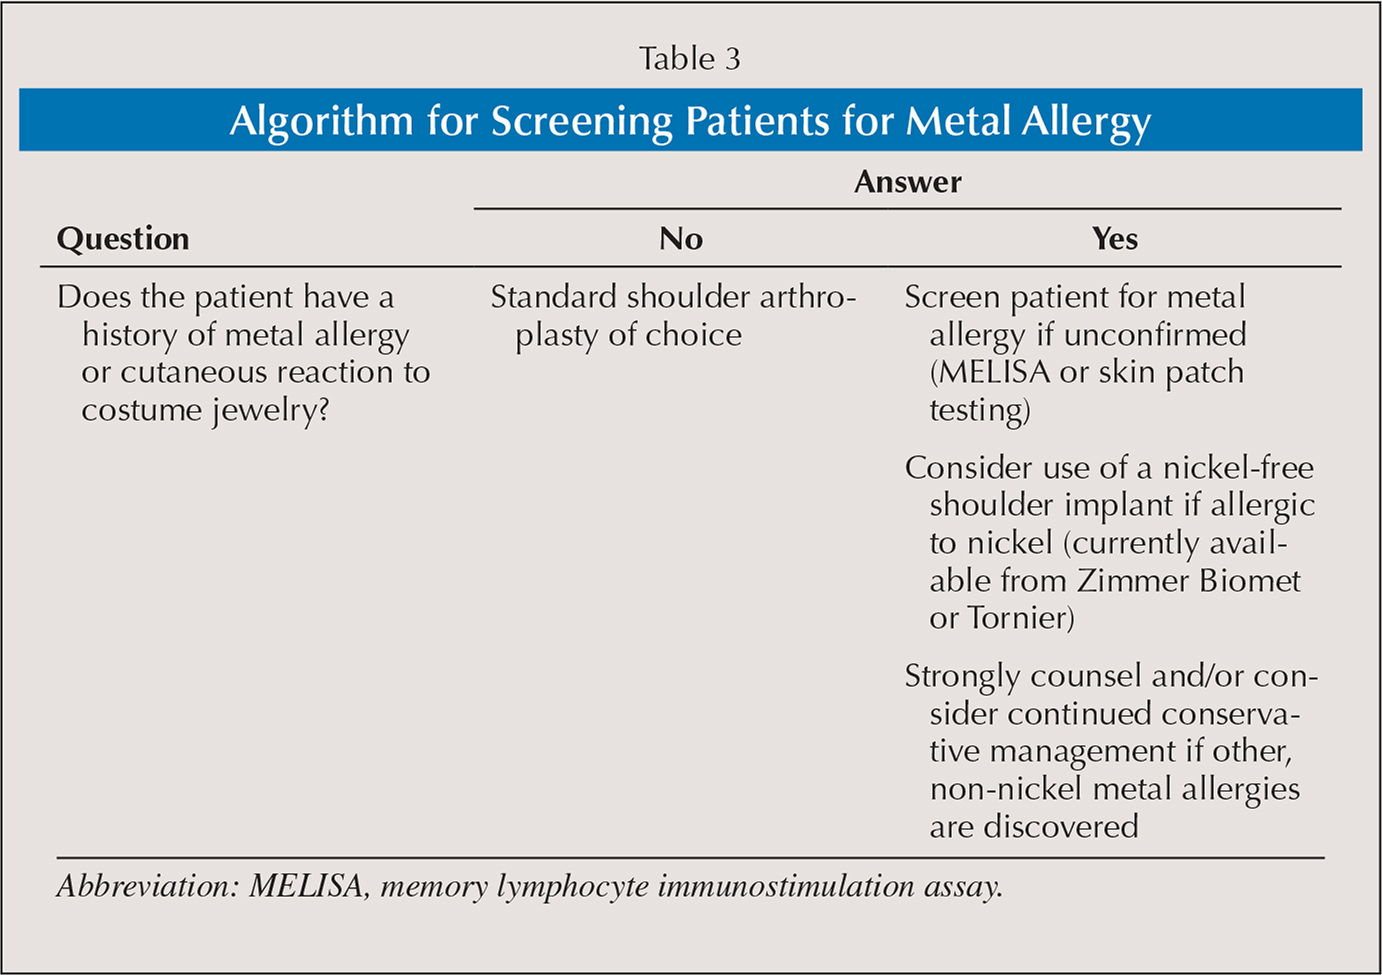 Algorithm for Screening Patients for Metal Allergy